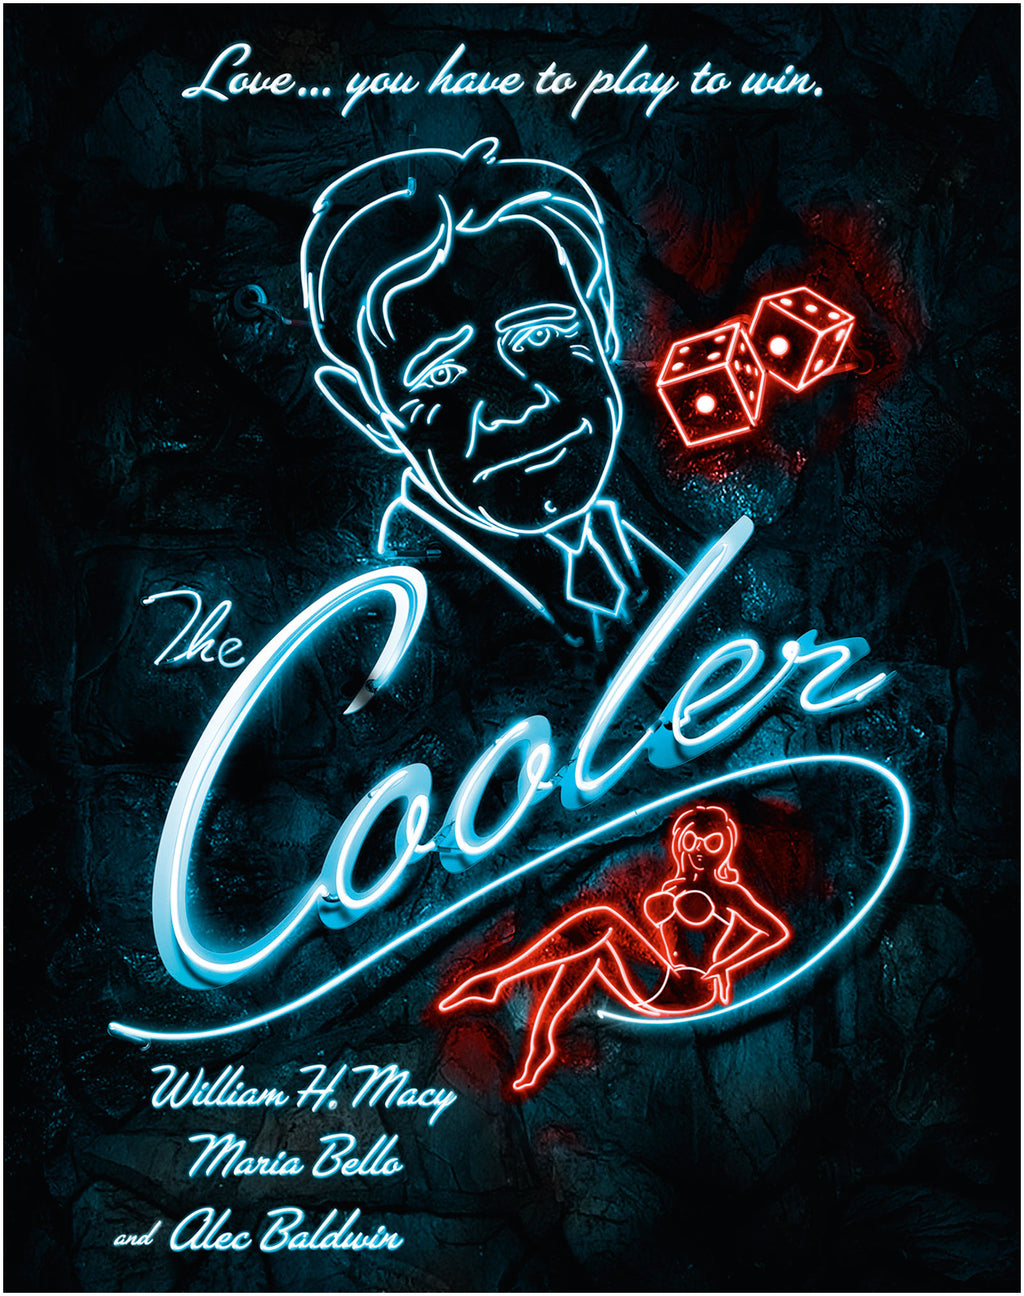 The Cooler (2003) (Limited Edition)